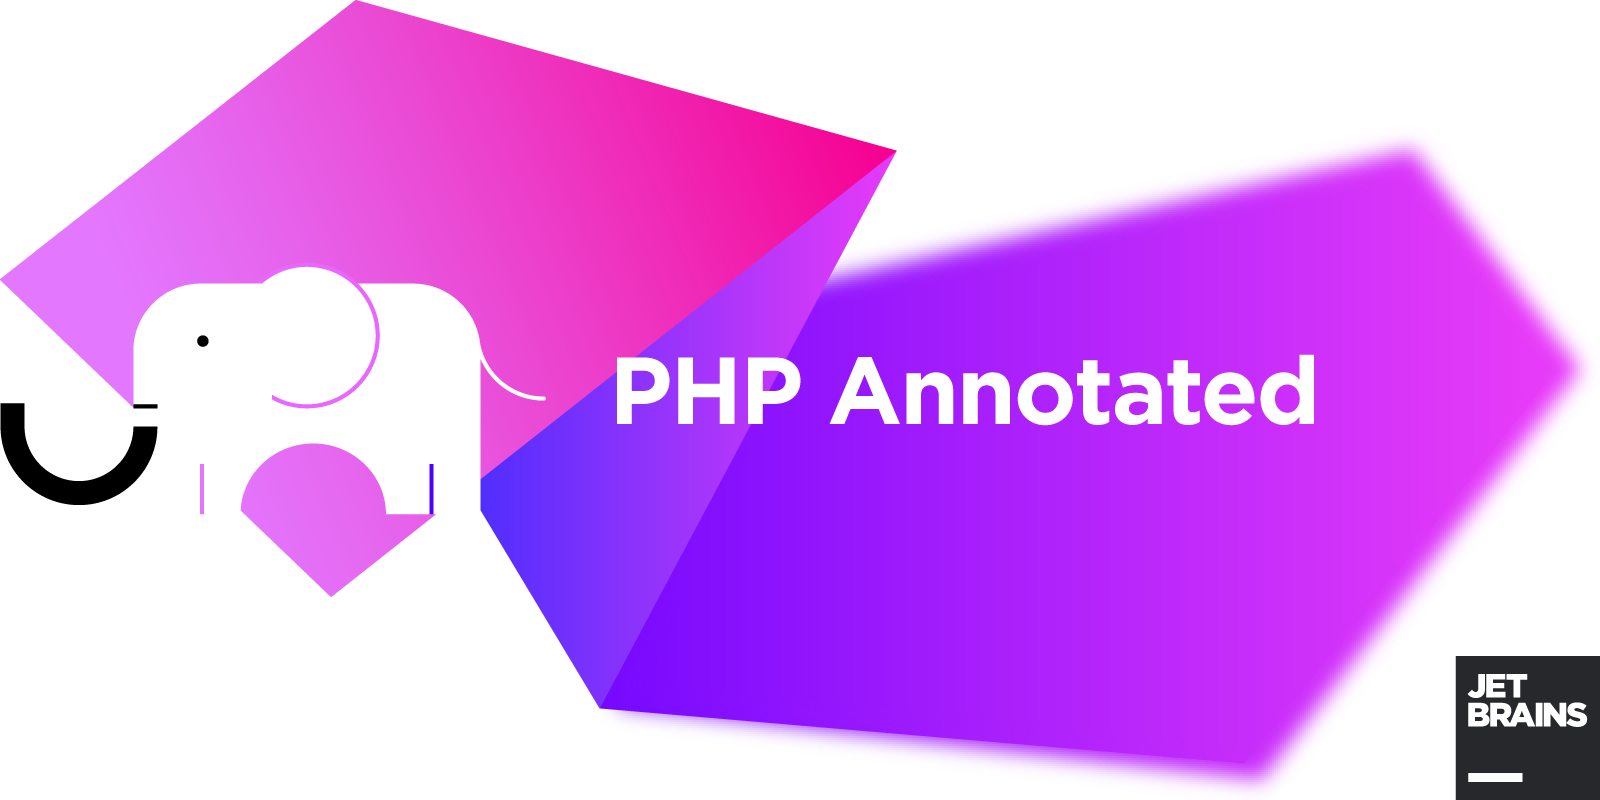 Php_annotated 이미지